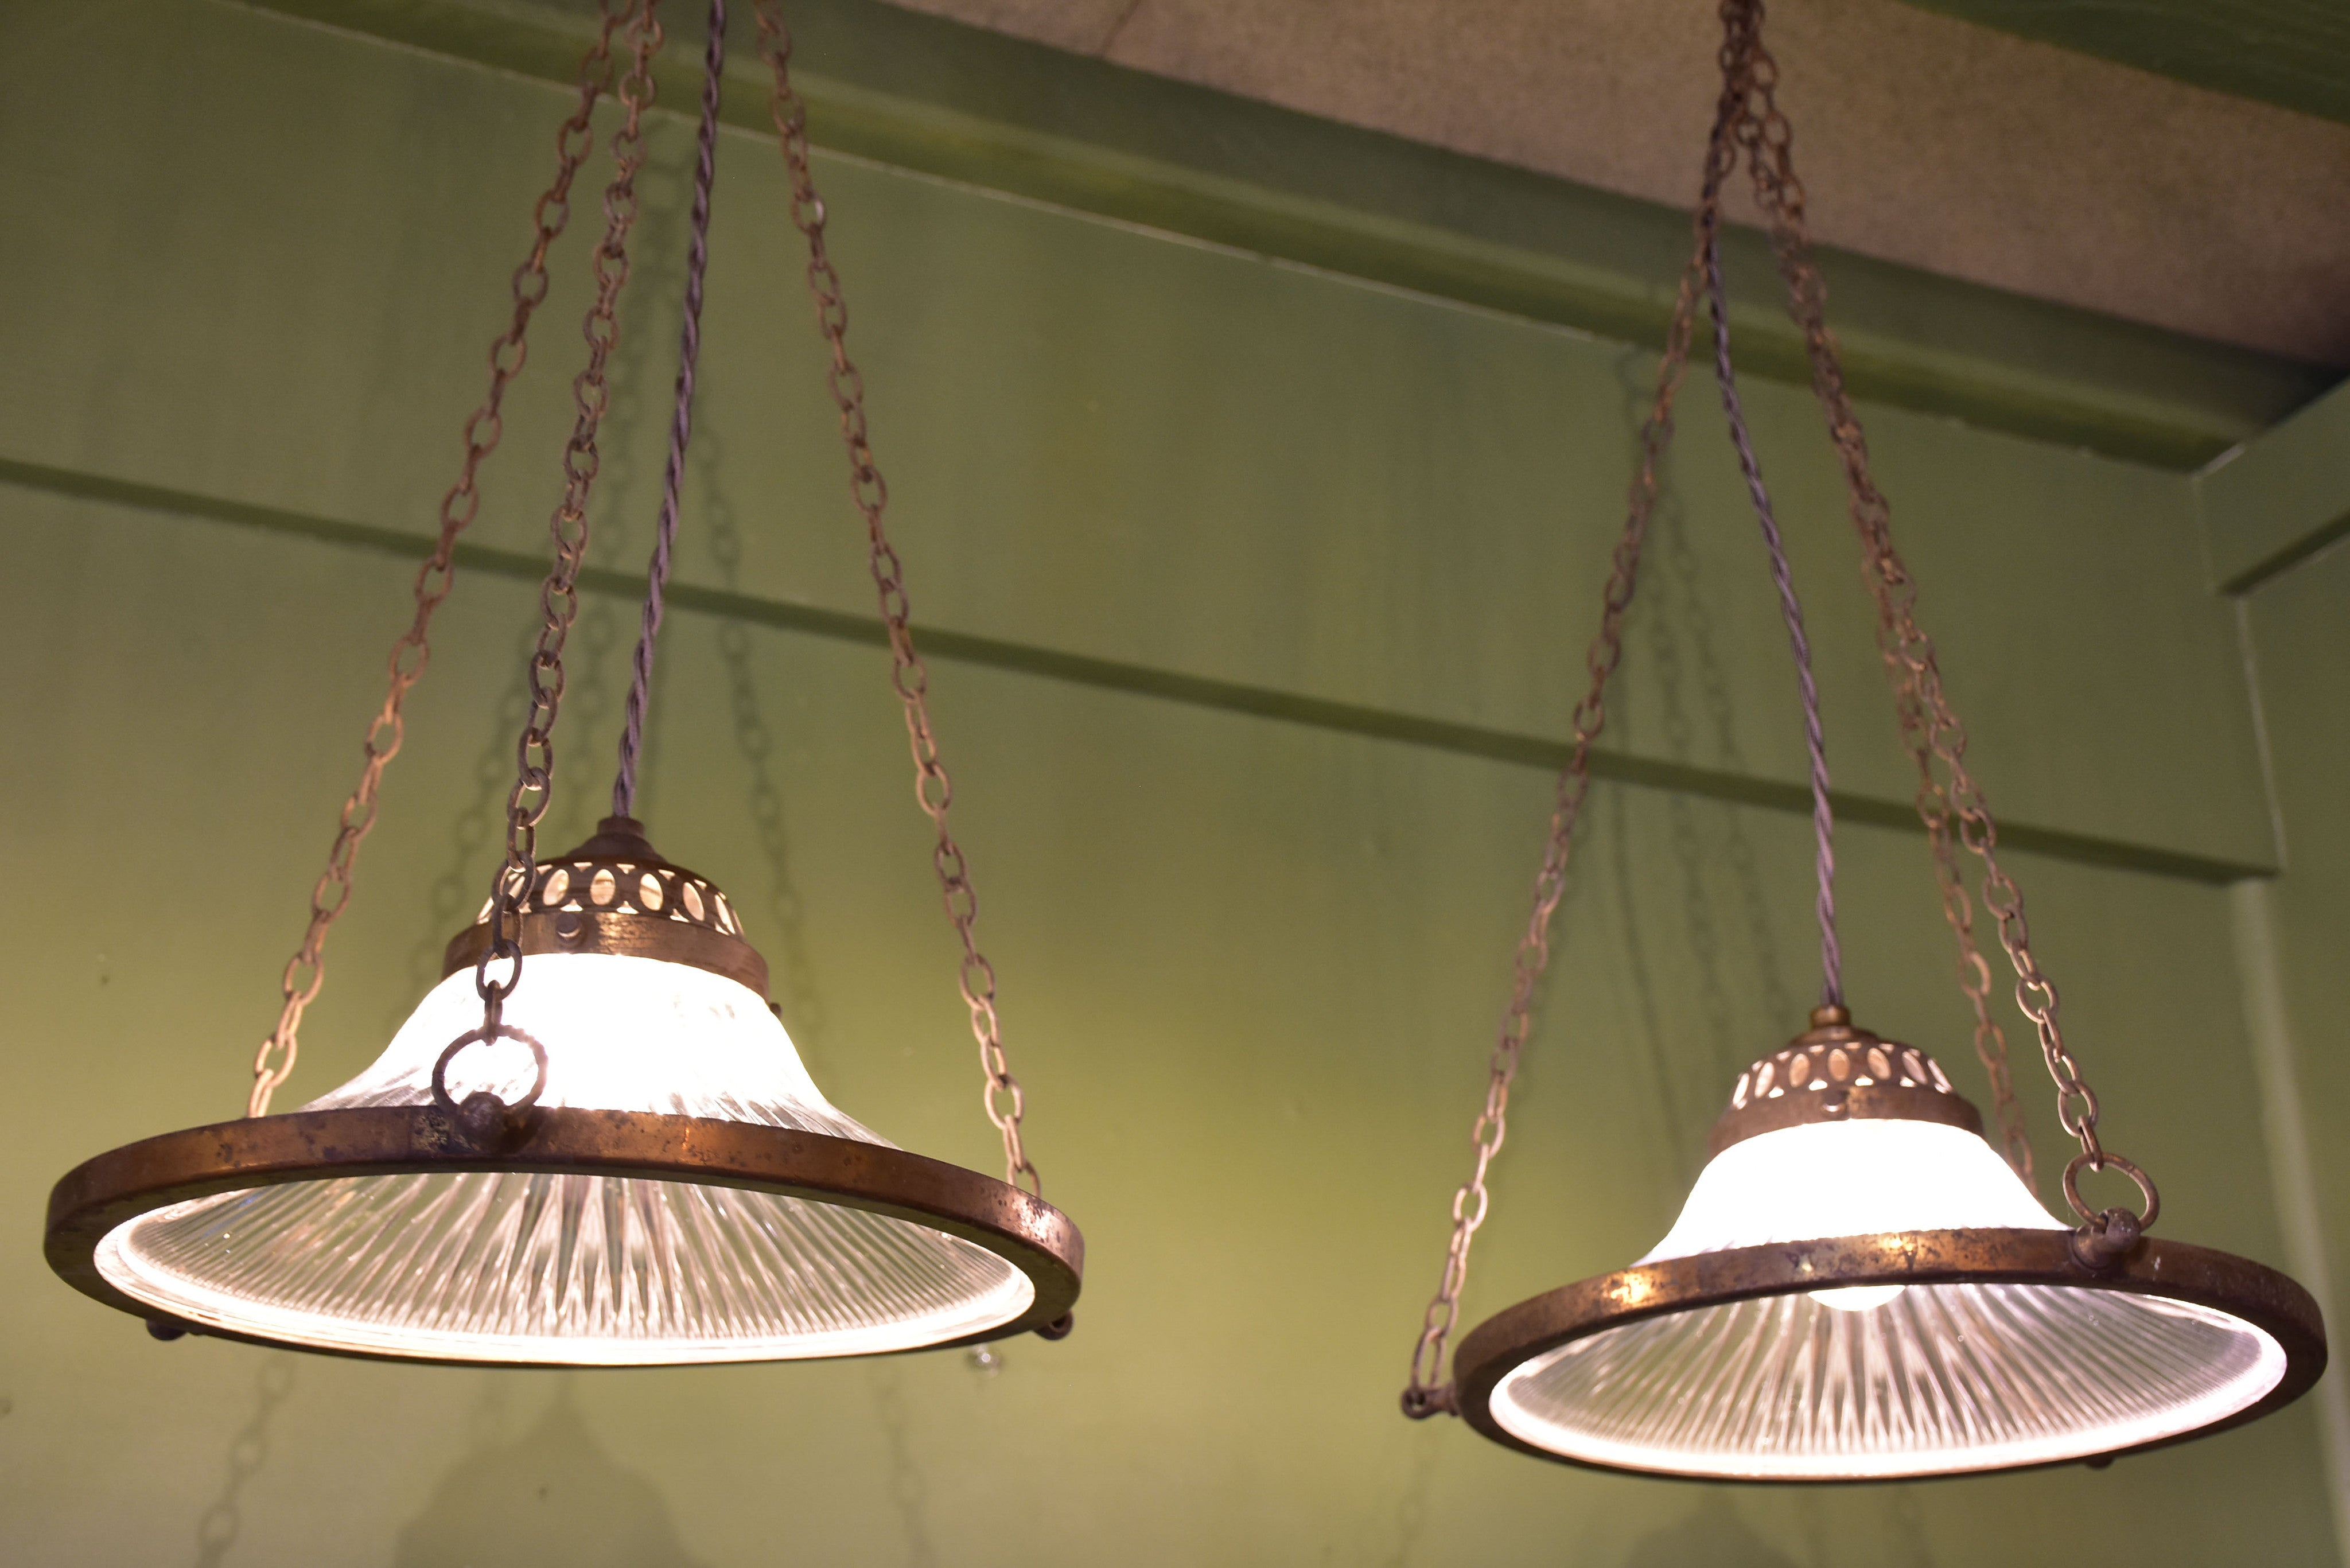 Pair of Verre Holophane suspended lights